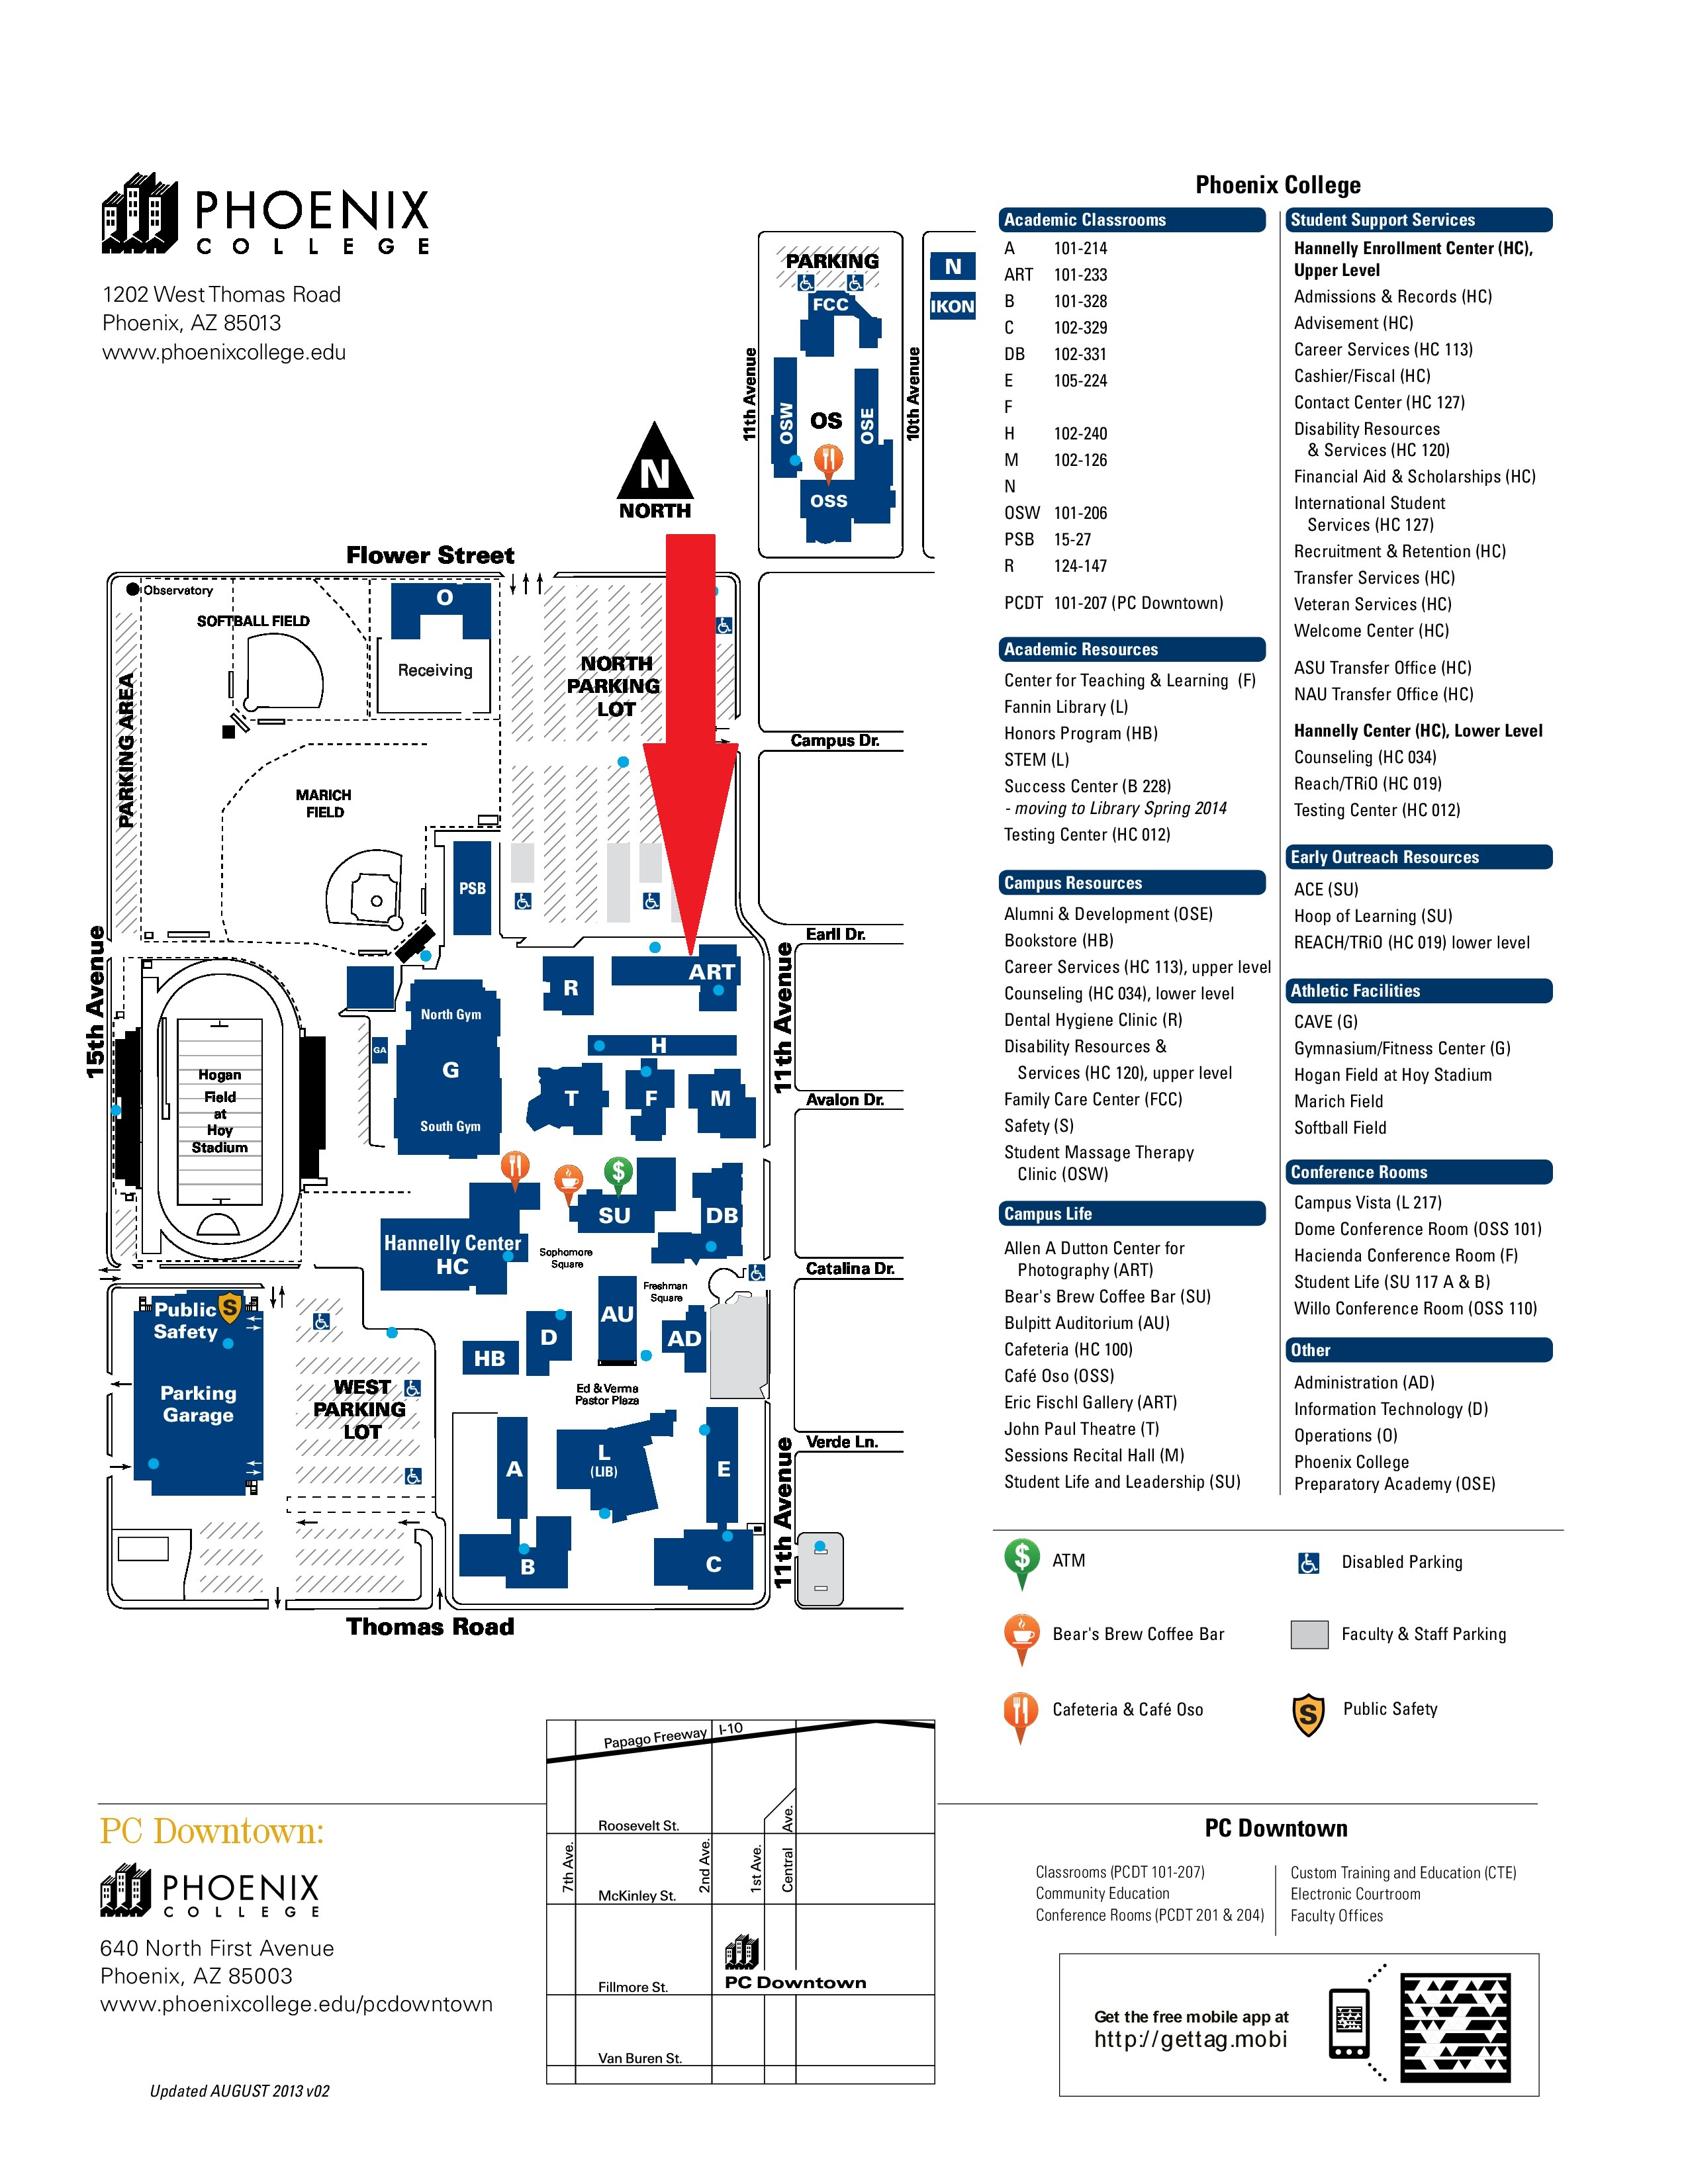 Phoenix College Map Dair Deckert Phoenix College map | AZ Attorney